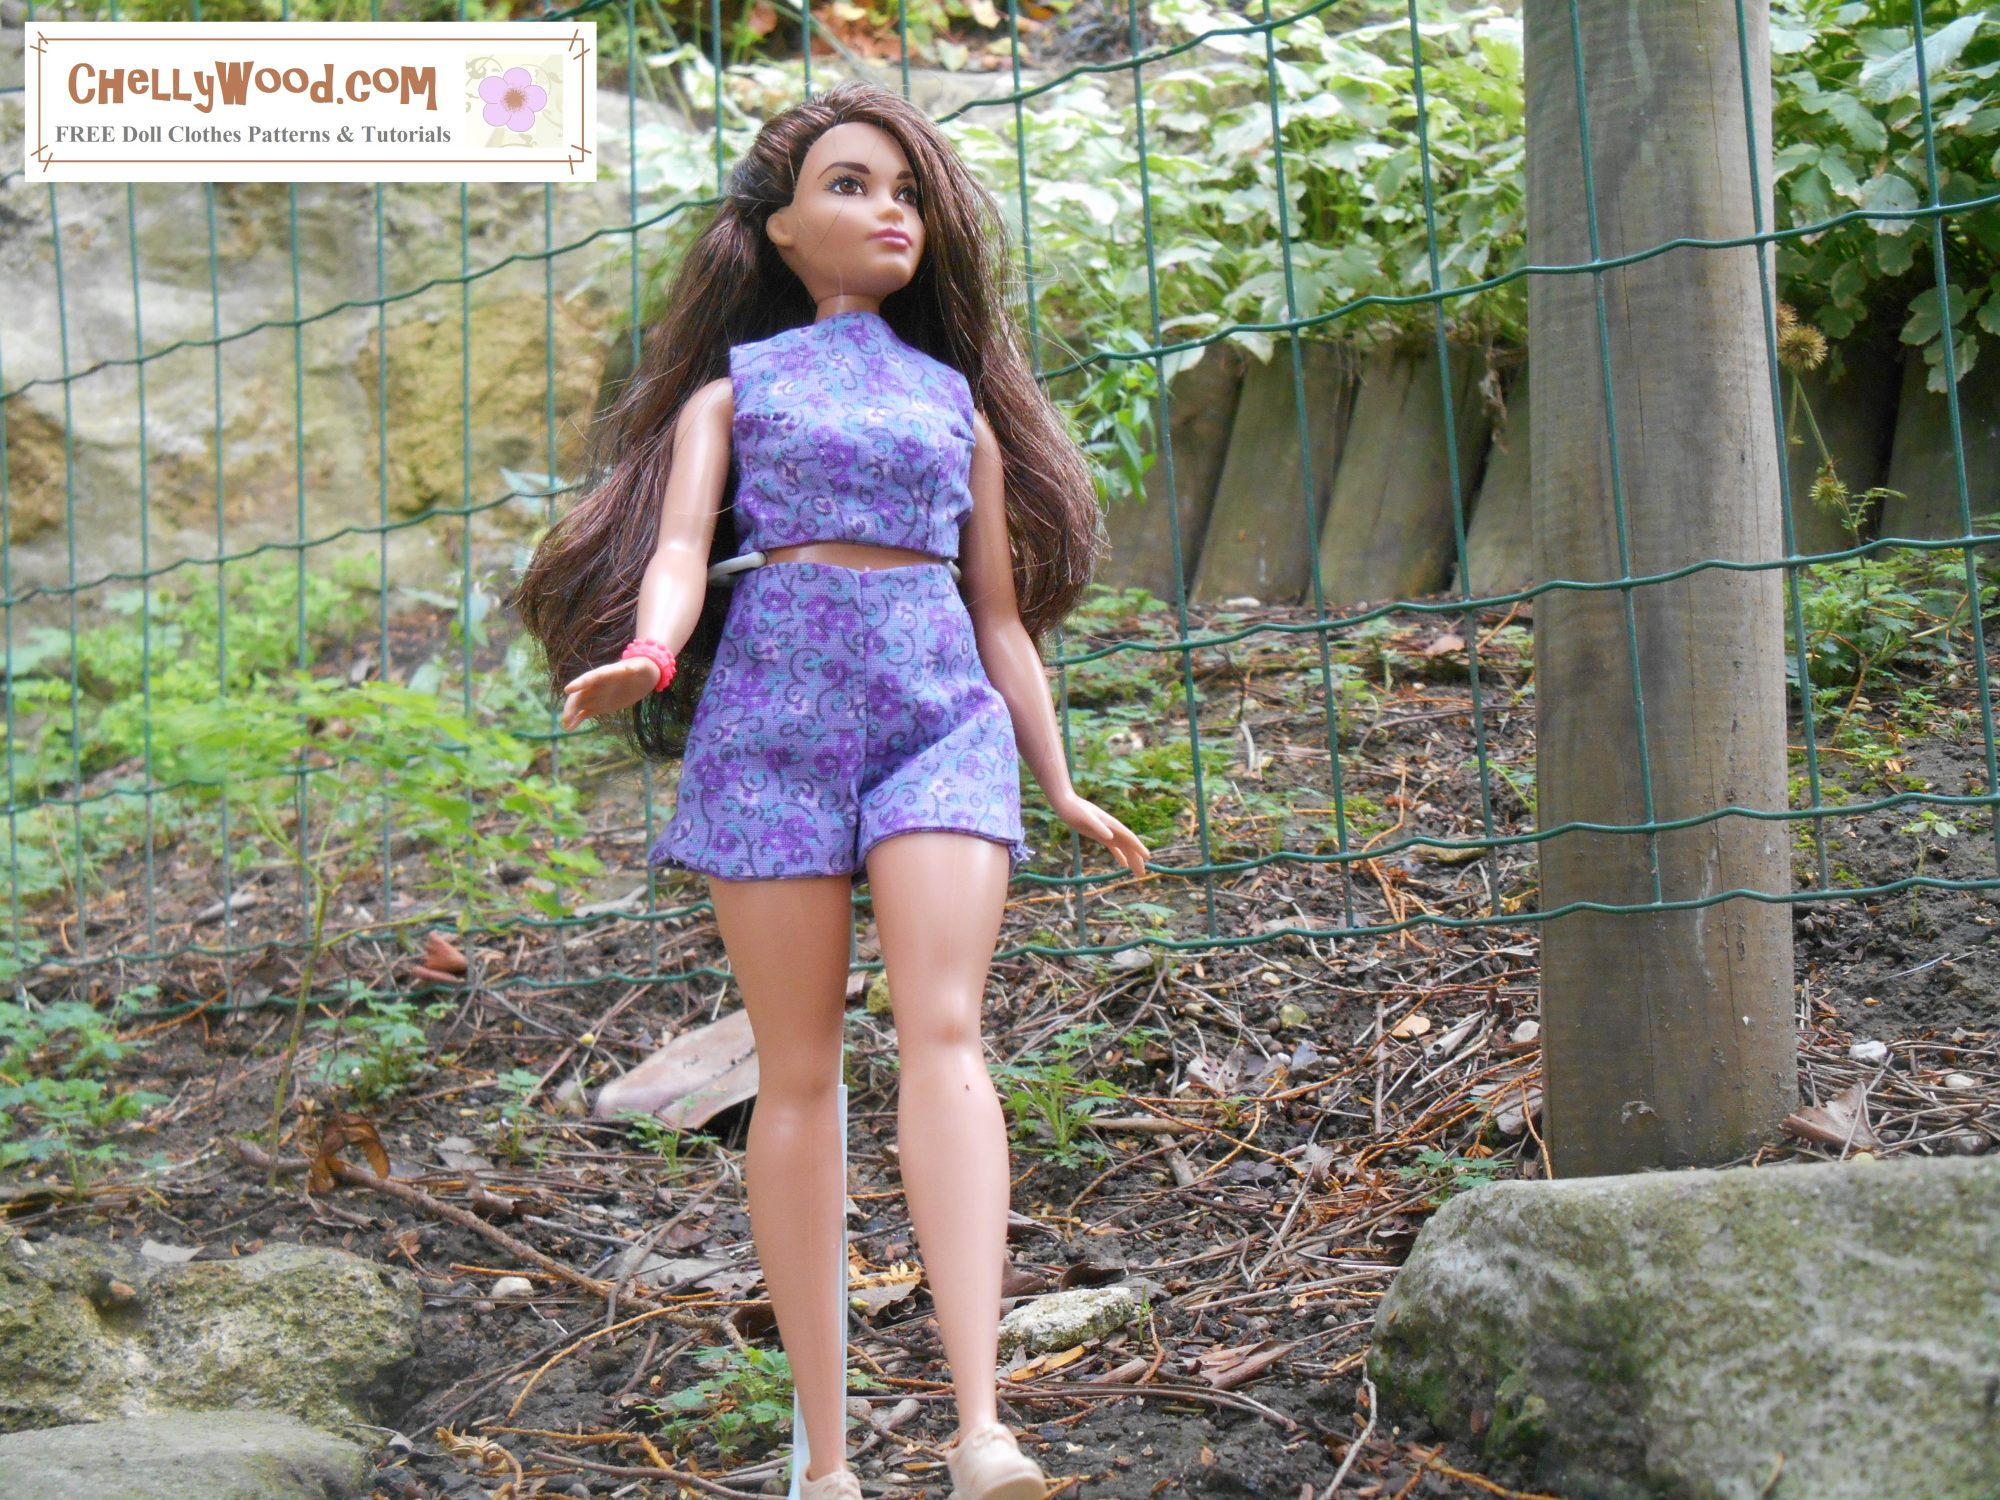 The image shows a Curvy Barbie walking in a garden. She wears handmade high-waisted shorts and a handmade crop top. The purple floral cotton fabric of her shirt and shorts contrasts against the green background of the garden. The overlay reminds you to visit ChellyWood.com for your free printable PDF sewing patterns for making this adorable summer outfit for Curvy Barbie dolls and similar sized dolls.